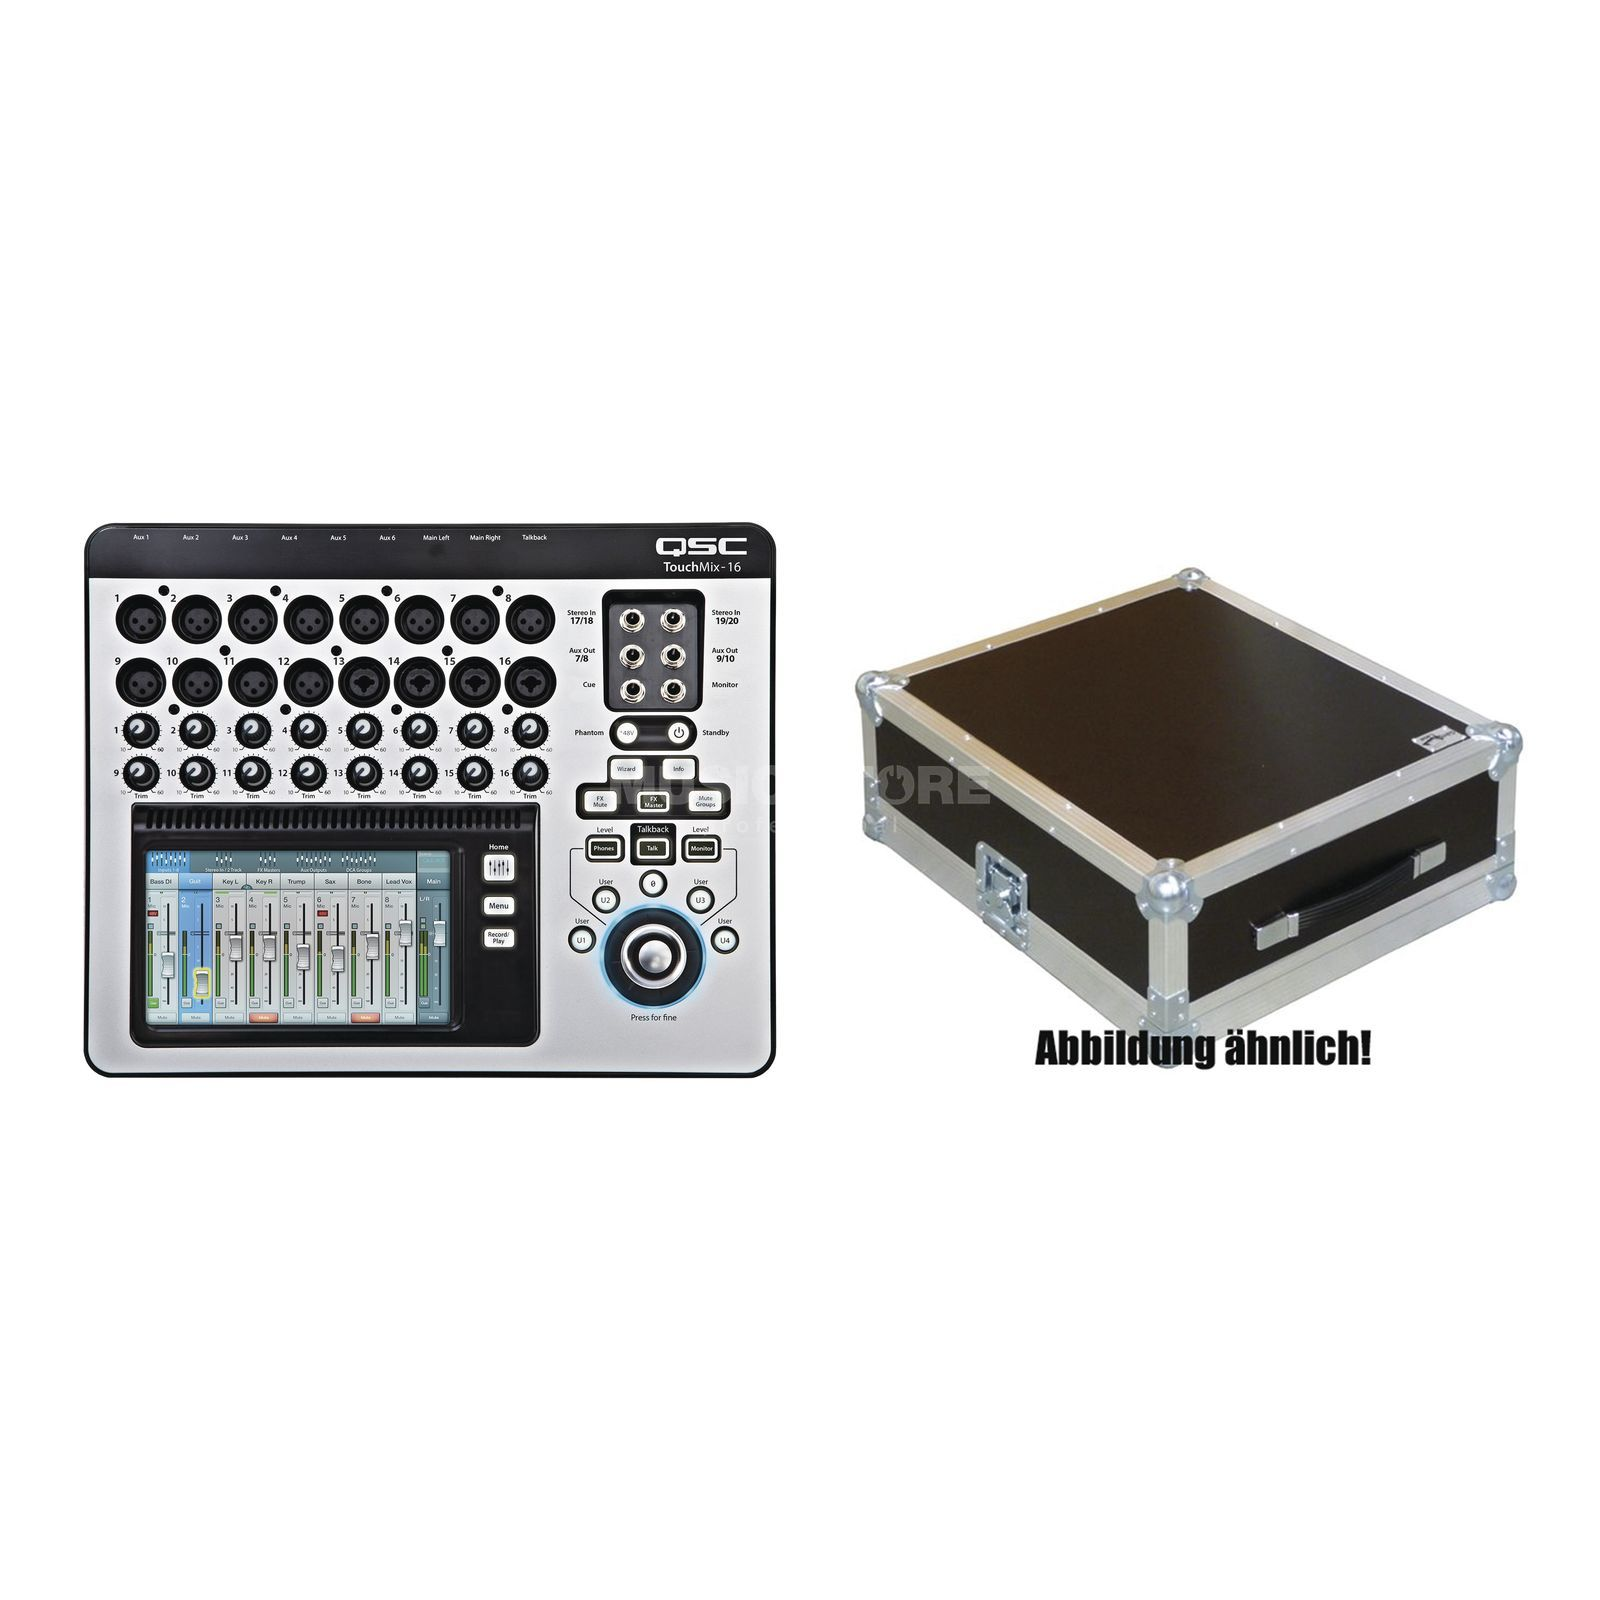 SET QSC TouchMix-16 Digitalmixer inkl. Case Produktbillede